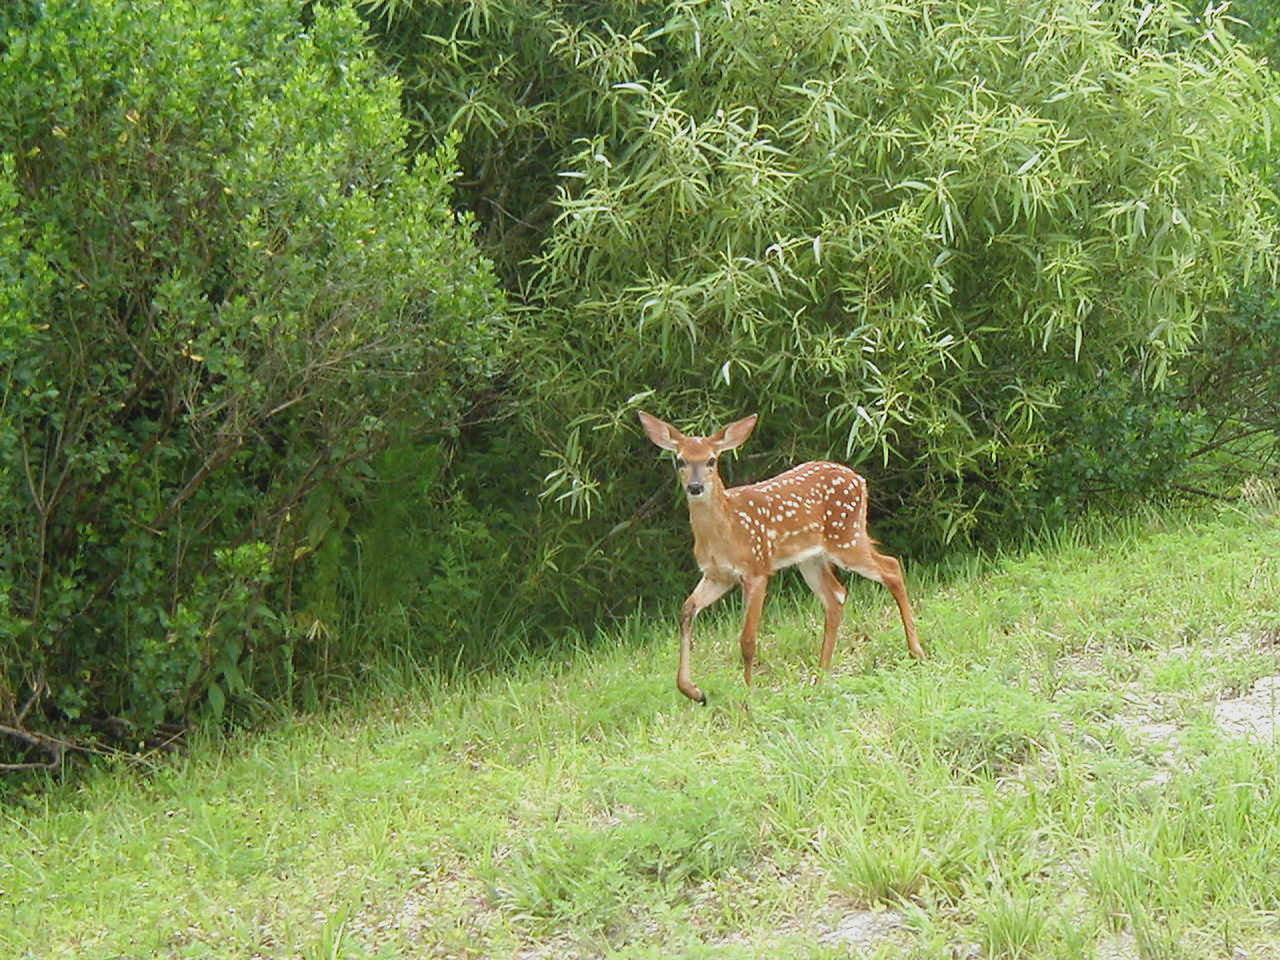 Young fawn<br /> PHOTO CREDIT: Deb Blick / Florida Trail Association